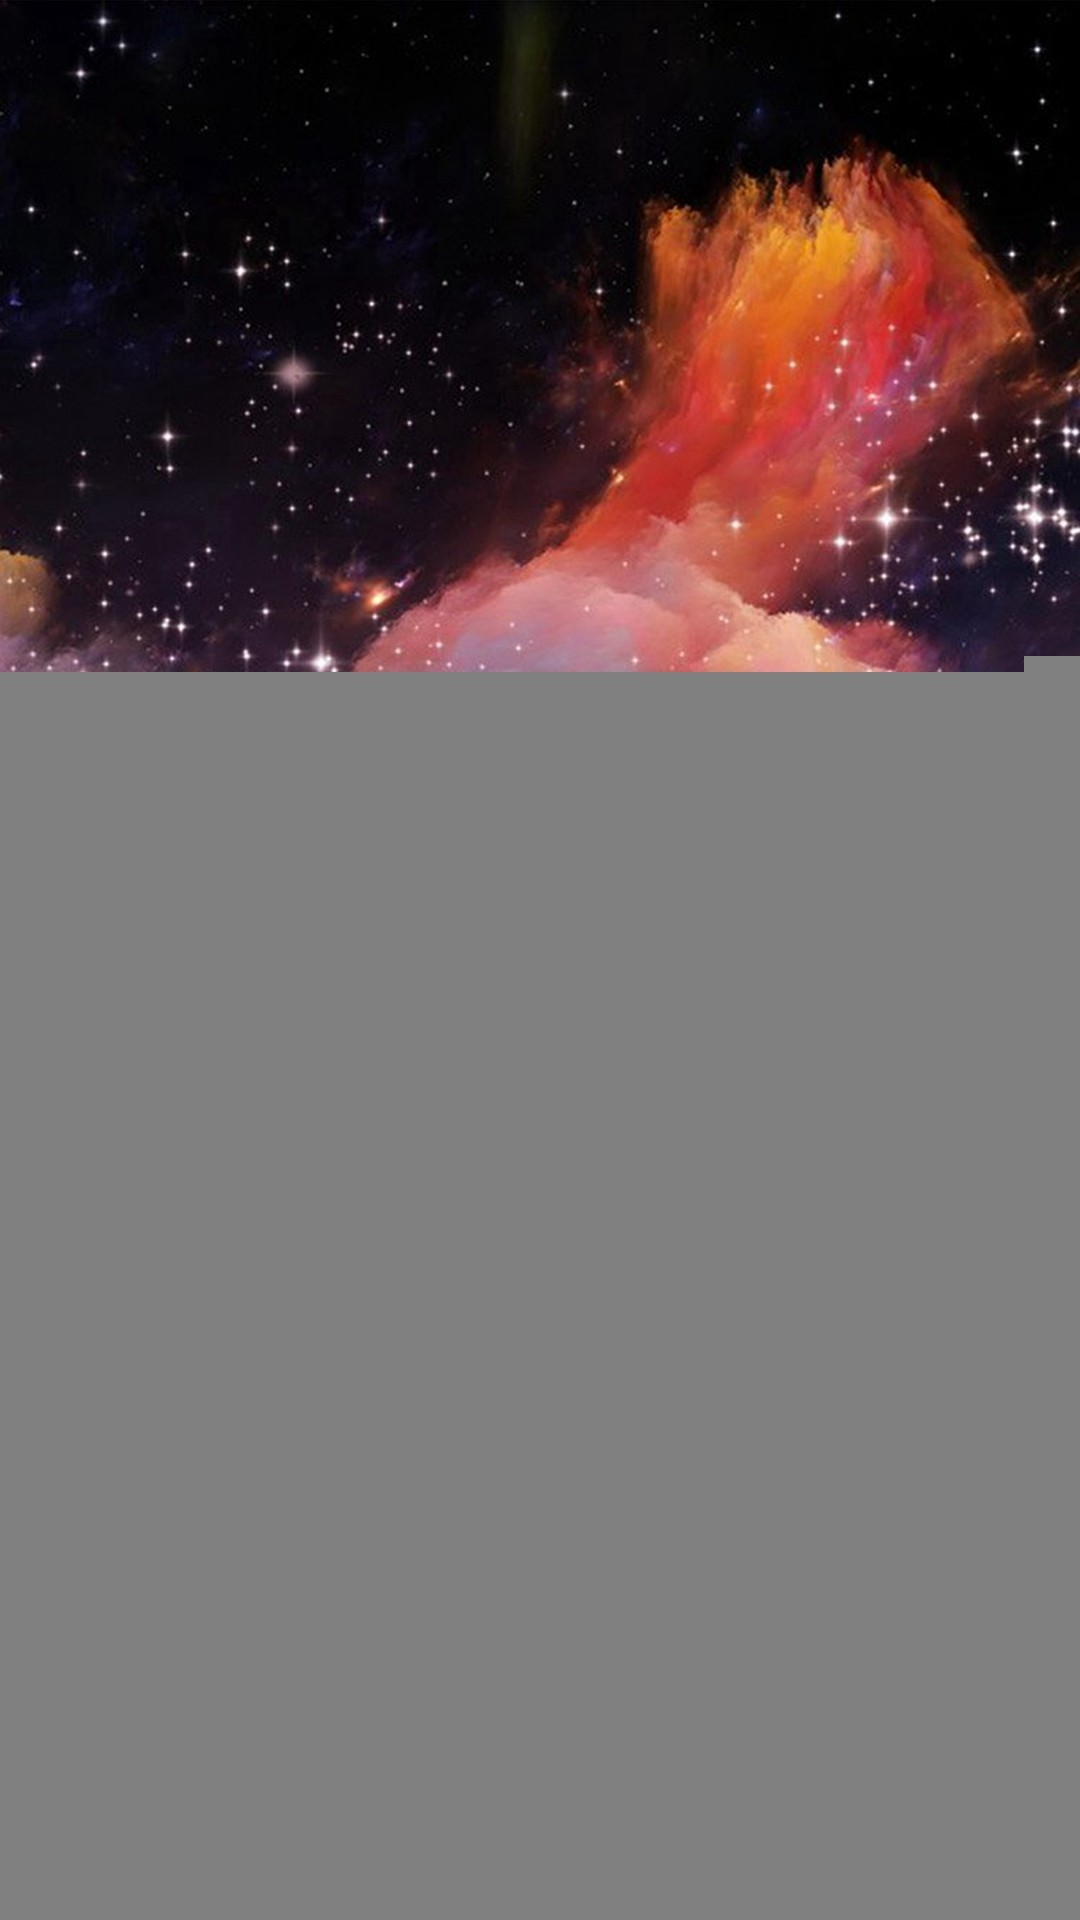 Space Rainbow Colorful Star Art Illustration iPhone 8 wallpaper